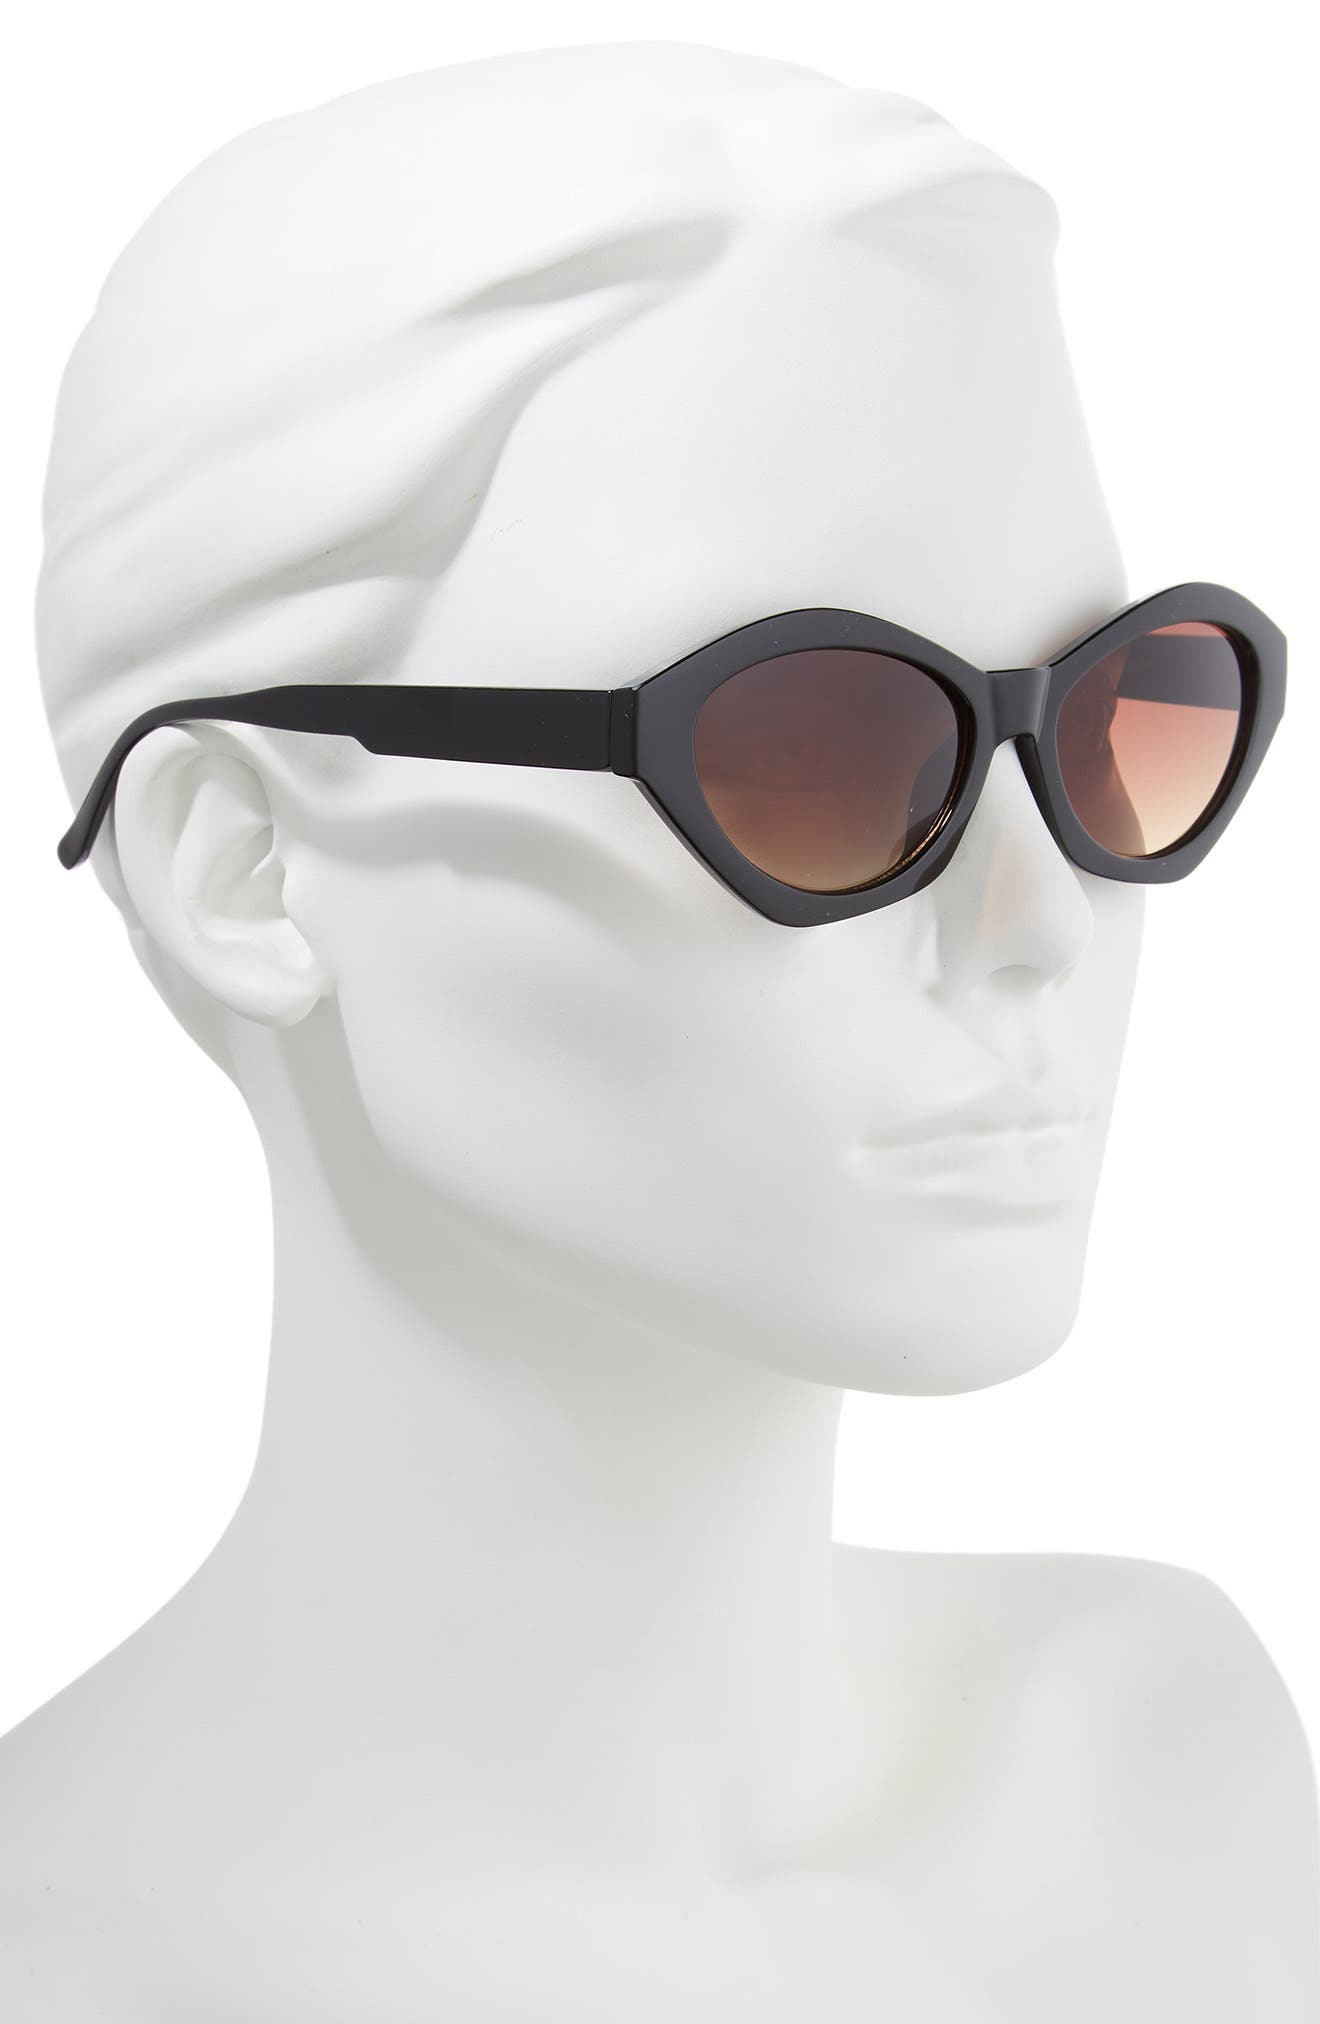 58mm Curved Cat Eye Sunglasses,                             Alternate thumbnail 2, color,                             001